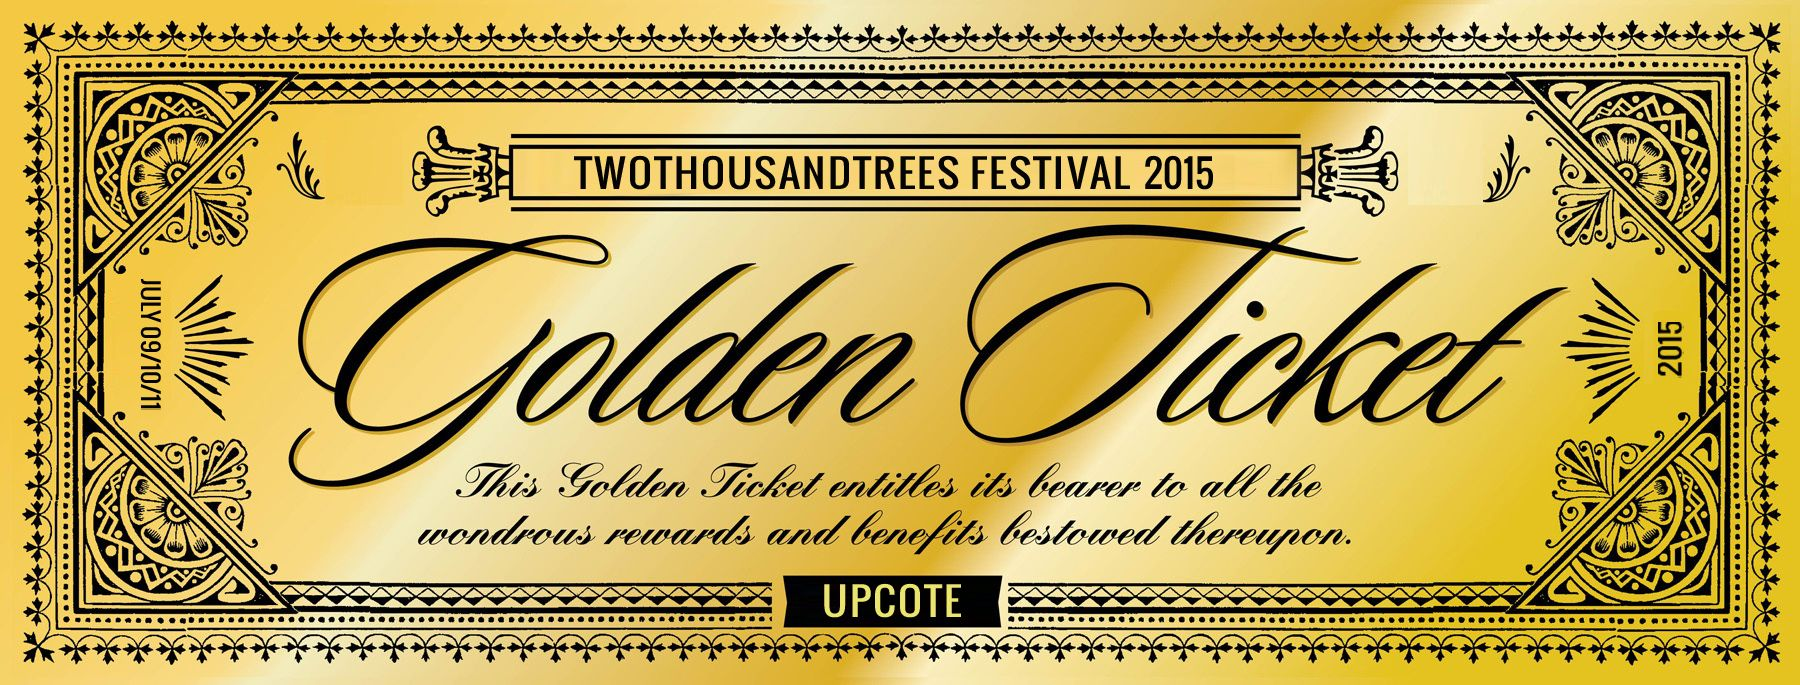 Golden ticket info 2000trees music festival 7th 9th of july golden ticket info 2000trees music festival 7th 9th of july pronofoot35fo Images